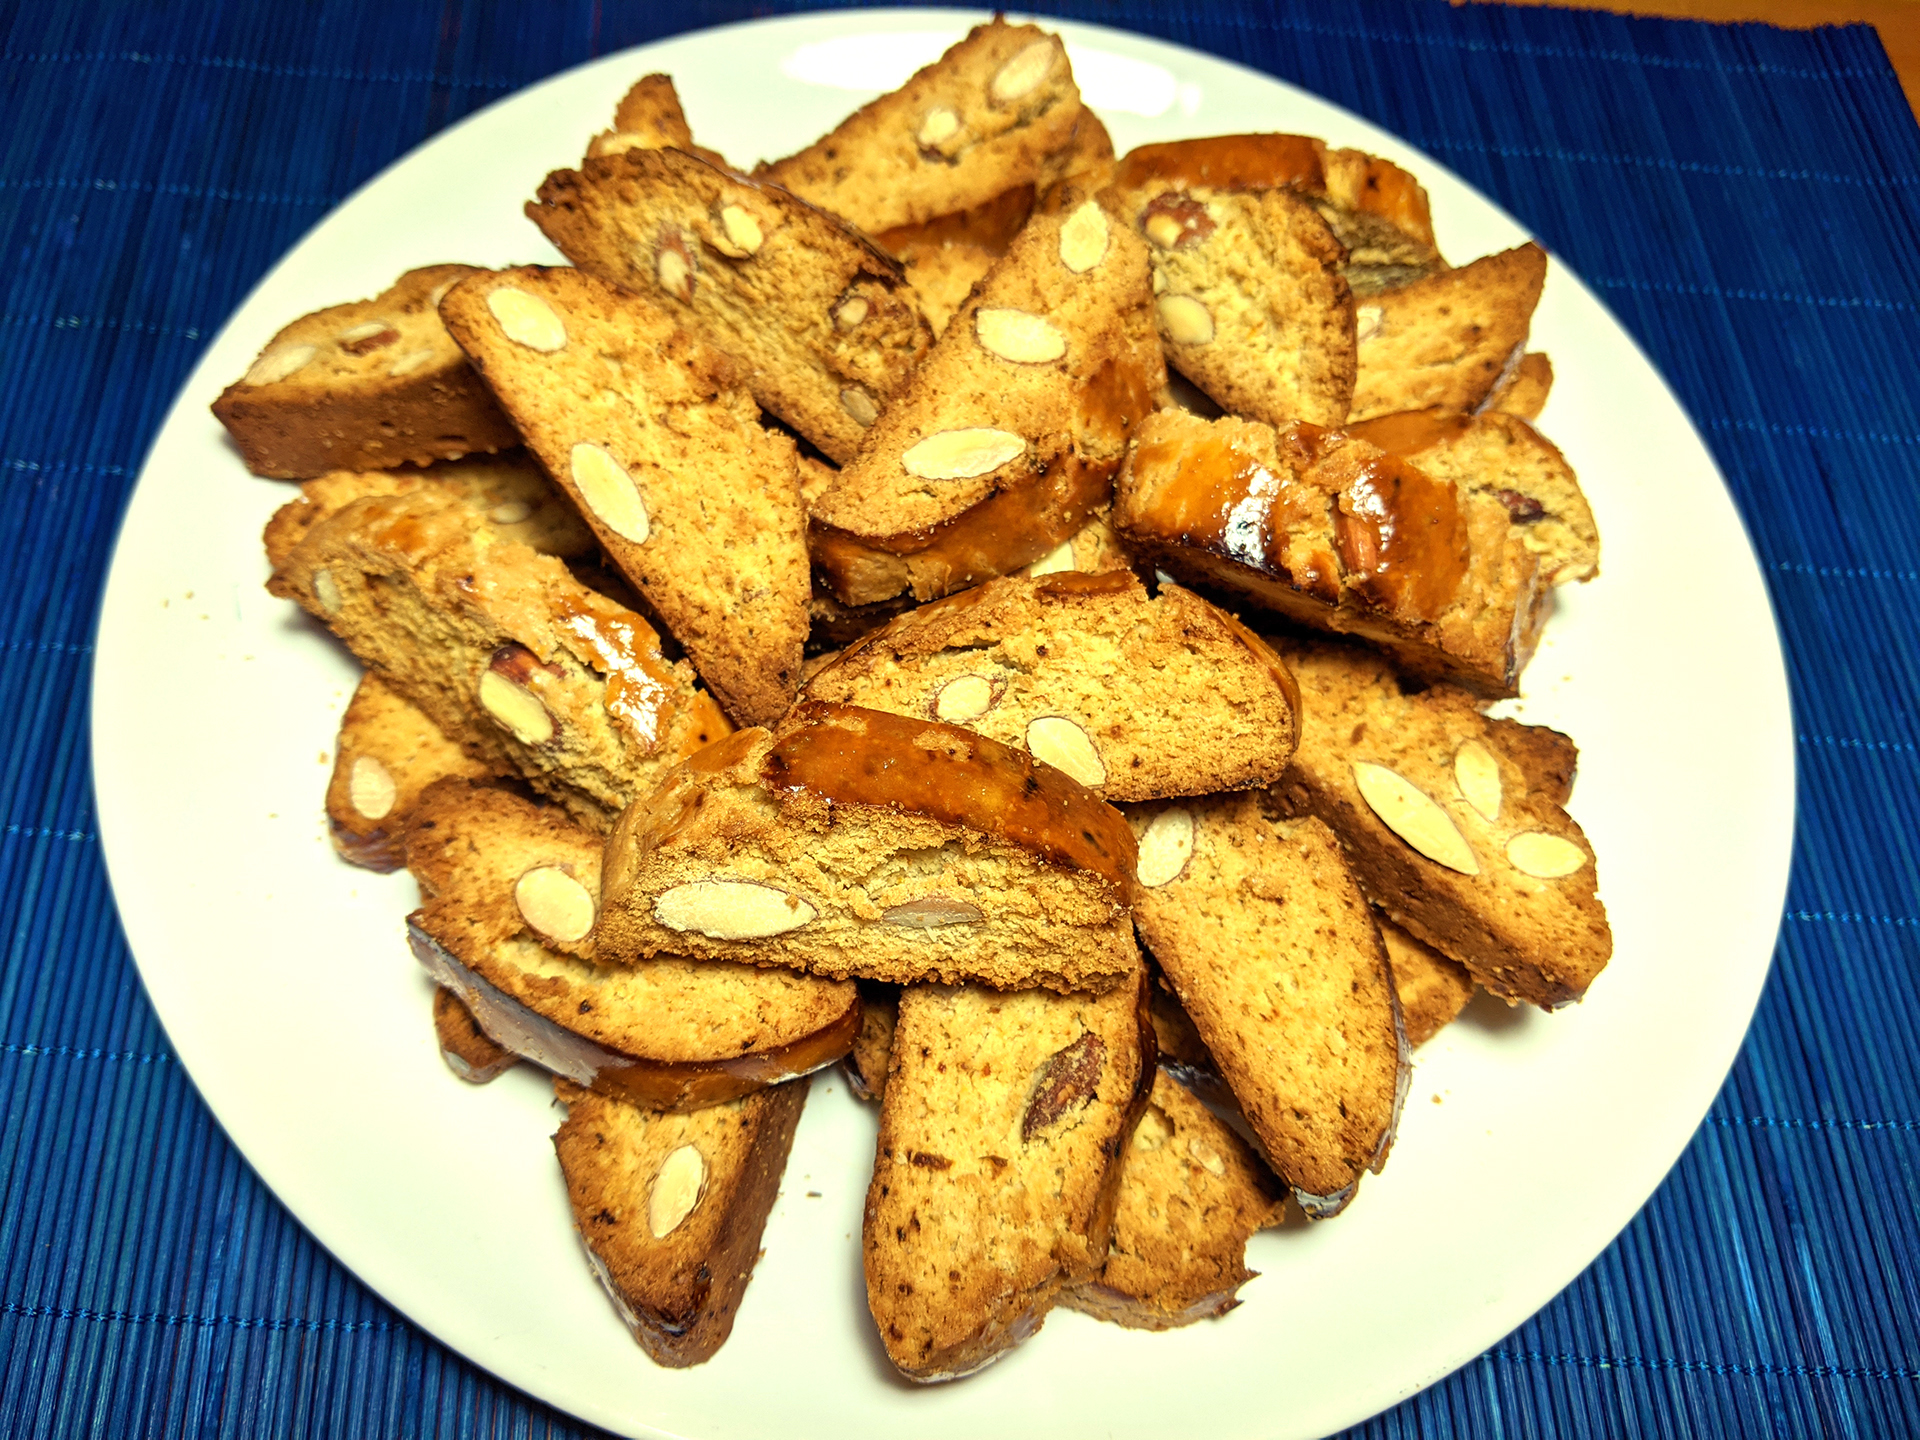 Almond biscuits (cantucci toscani) ~ Desserts Recipes  ~ La ragazza col mattarello